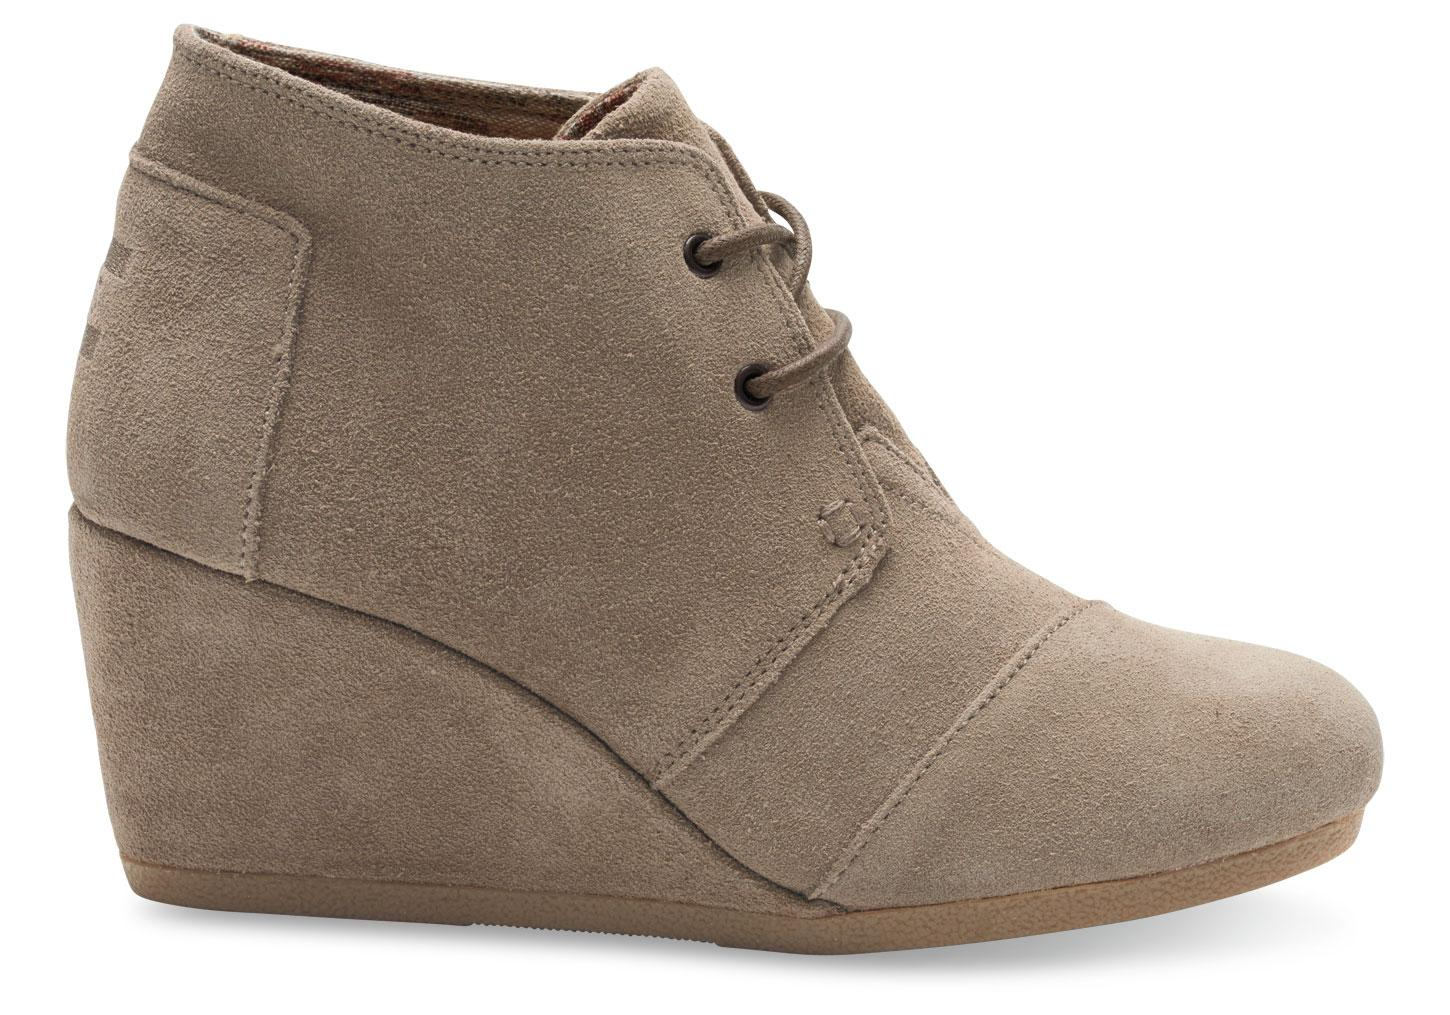 Toms Taupe Suede Women S Desert Wedges In Brown Lyst